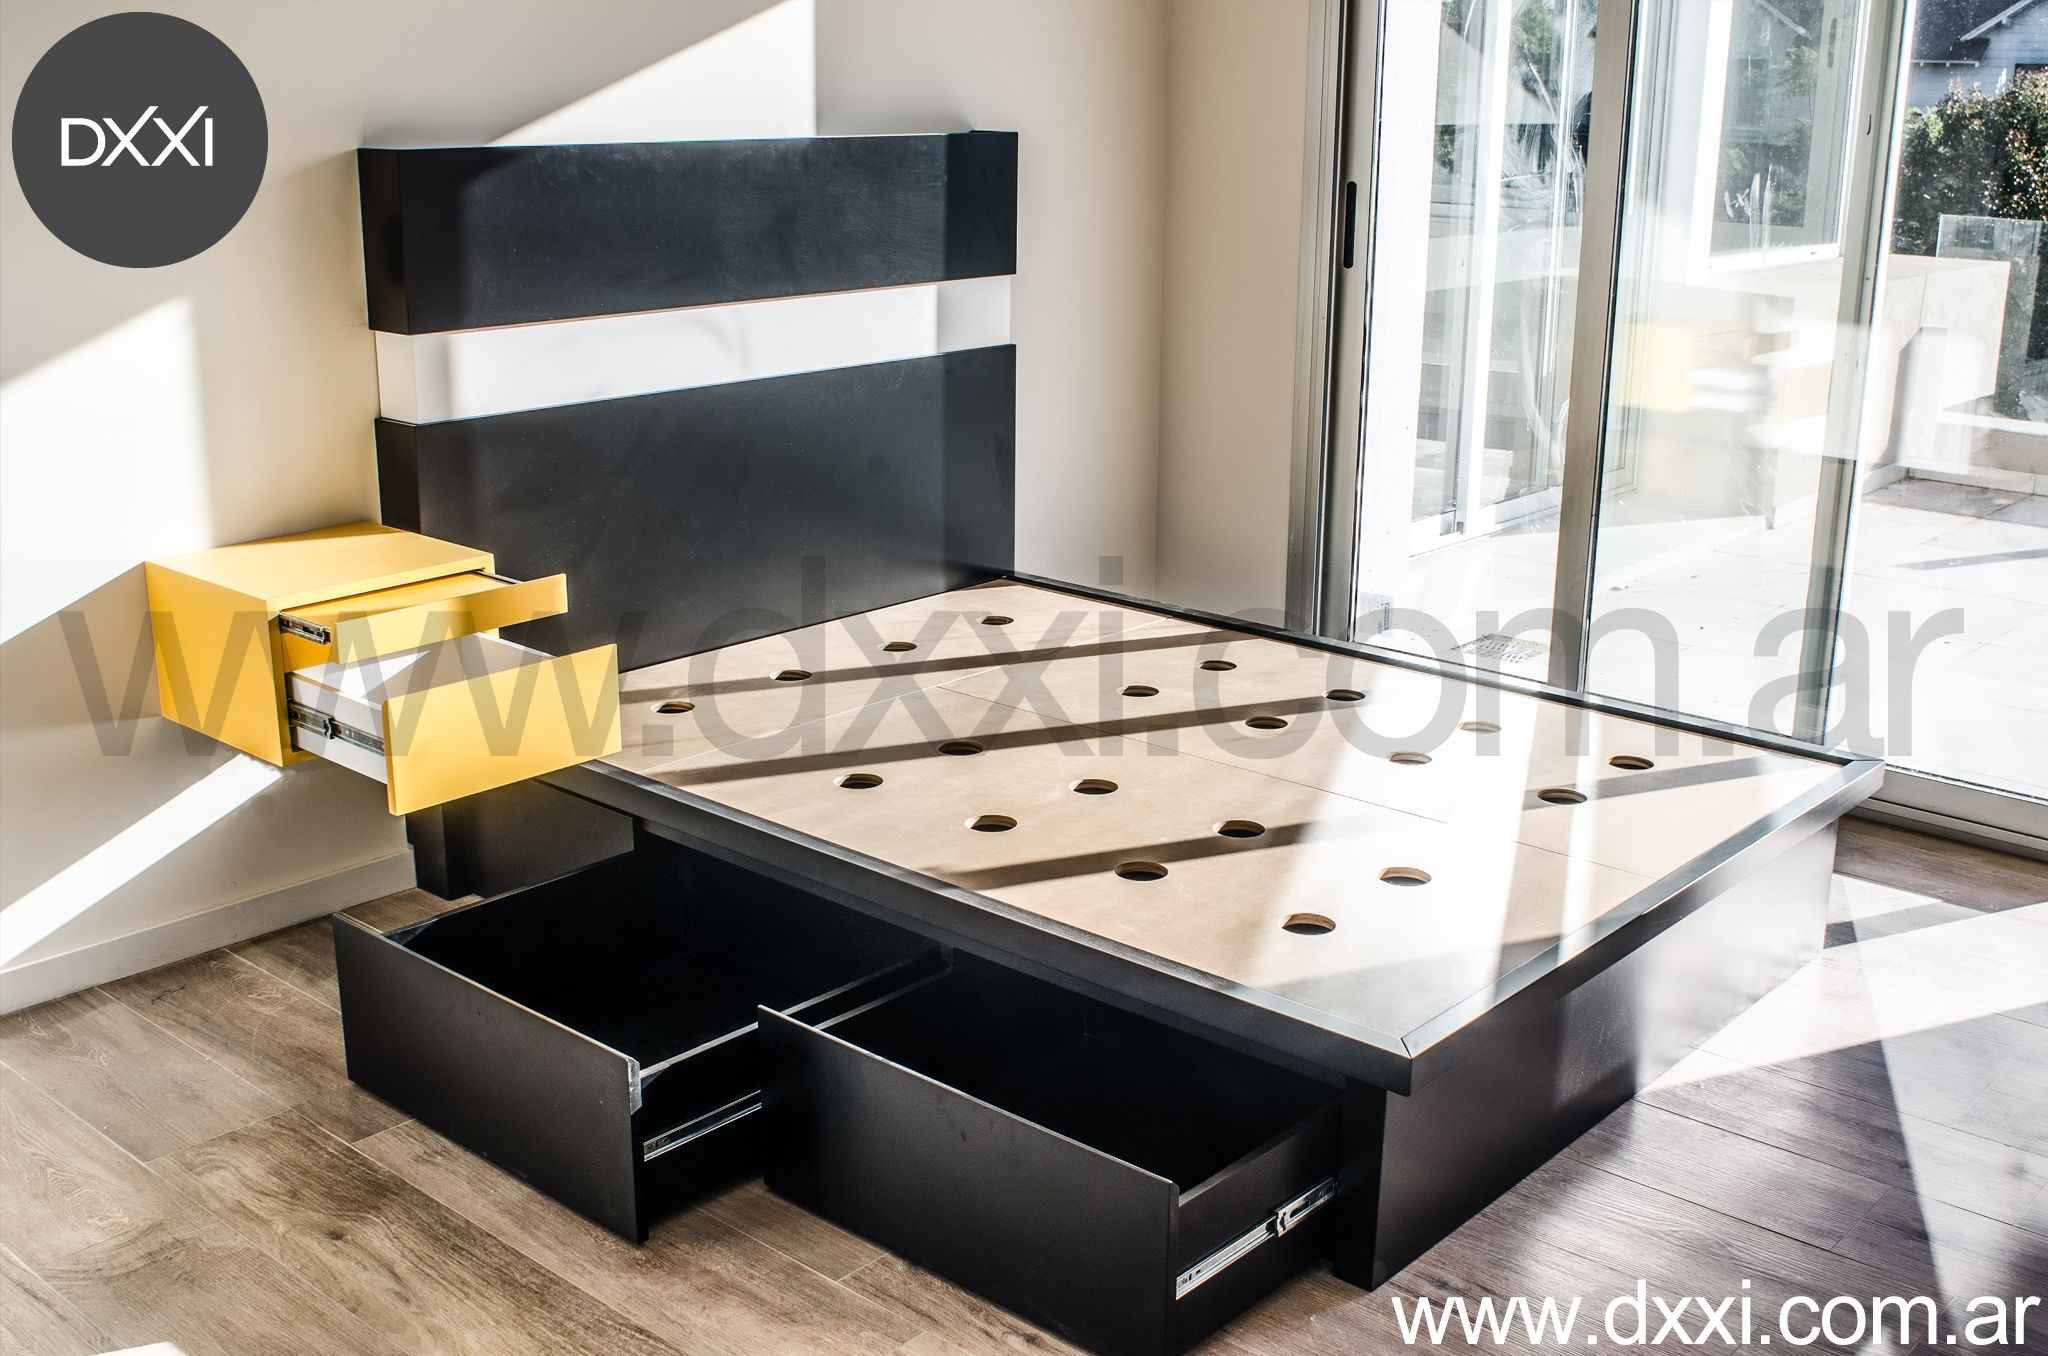 Furniture designed manufactured by dxxi buenos aires for Muebles contemporaneos argentina